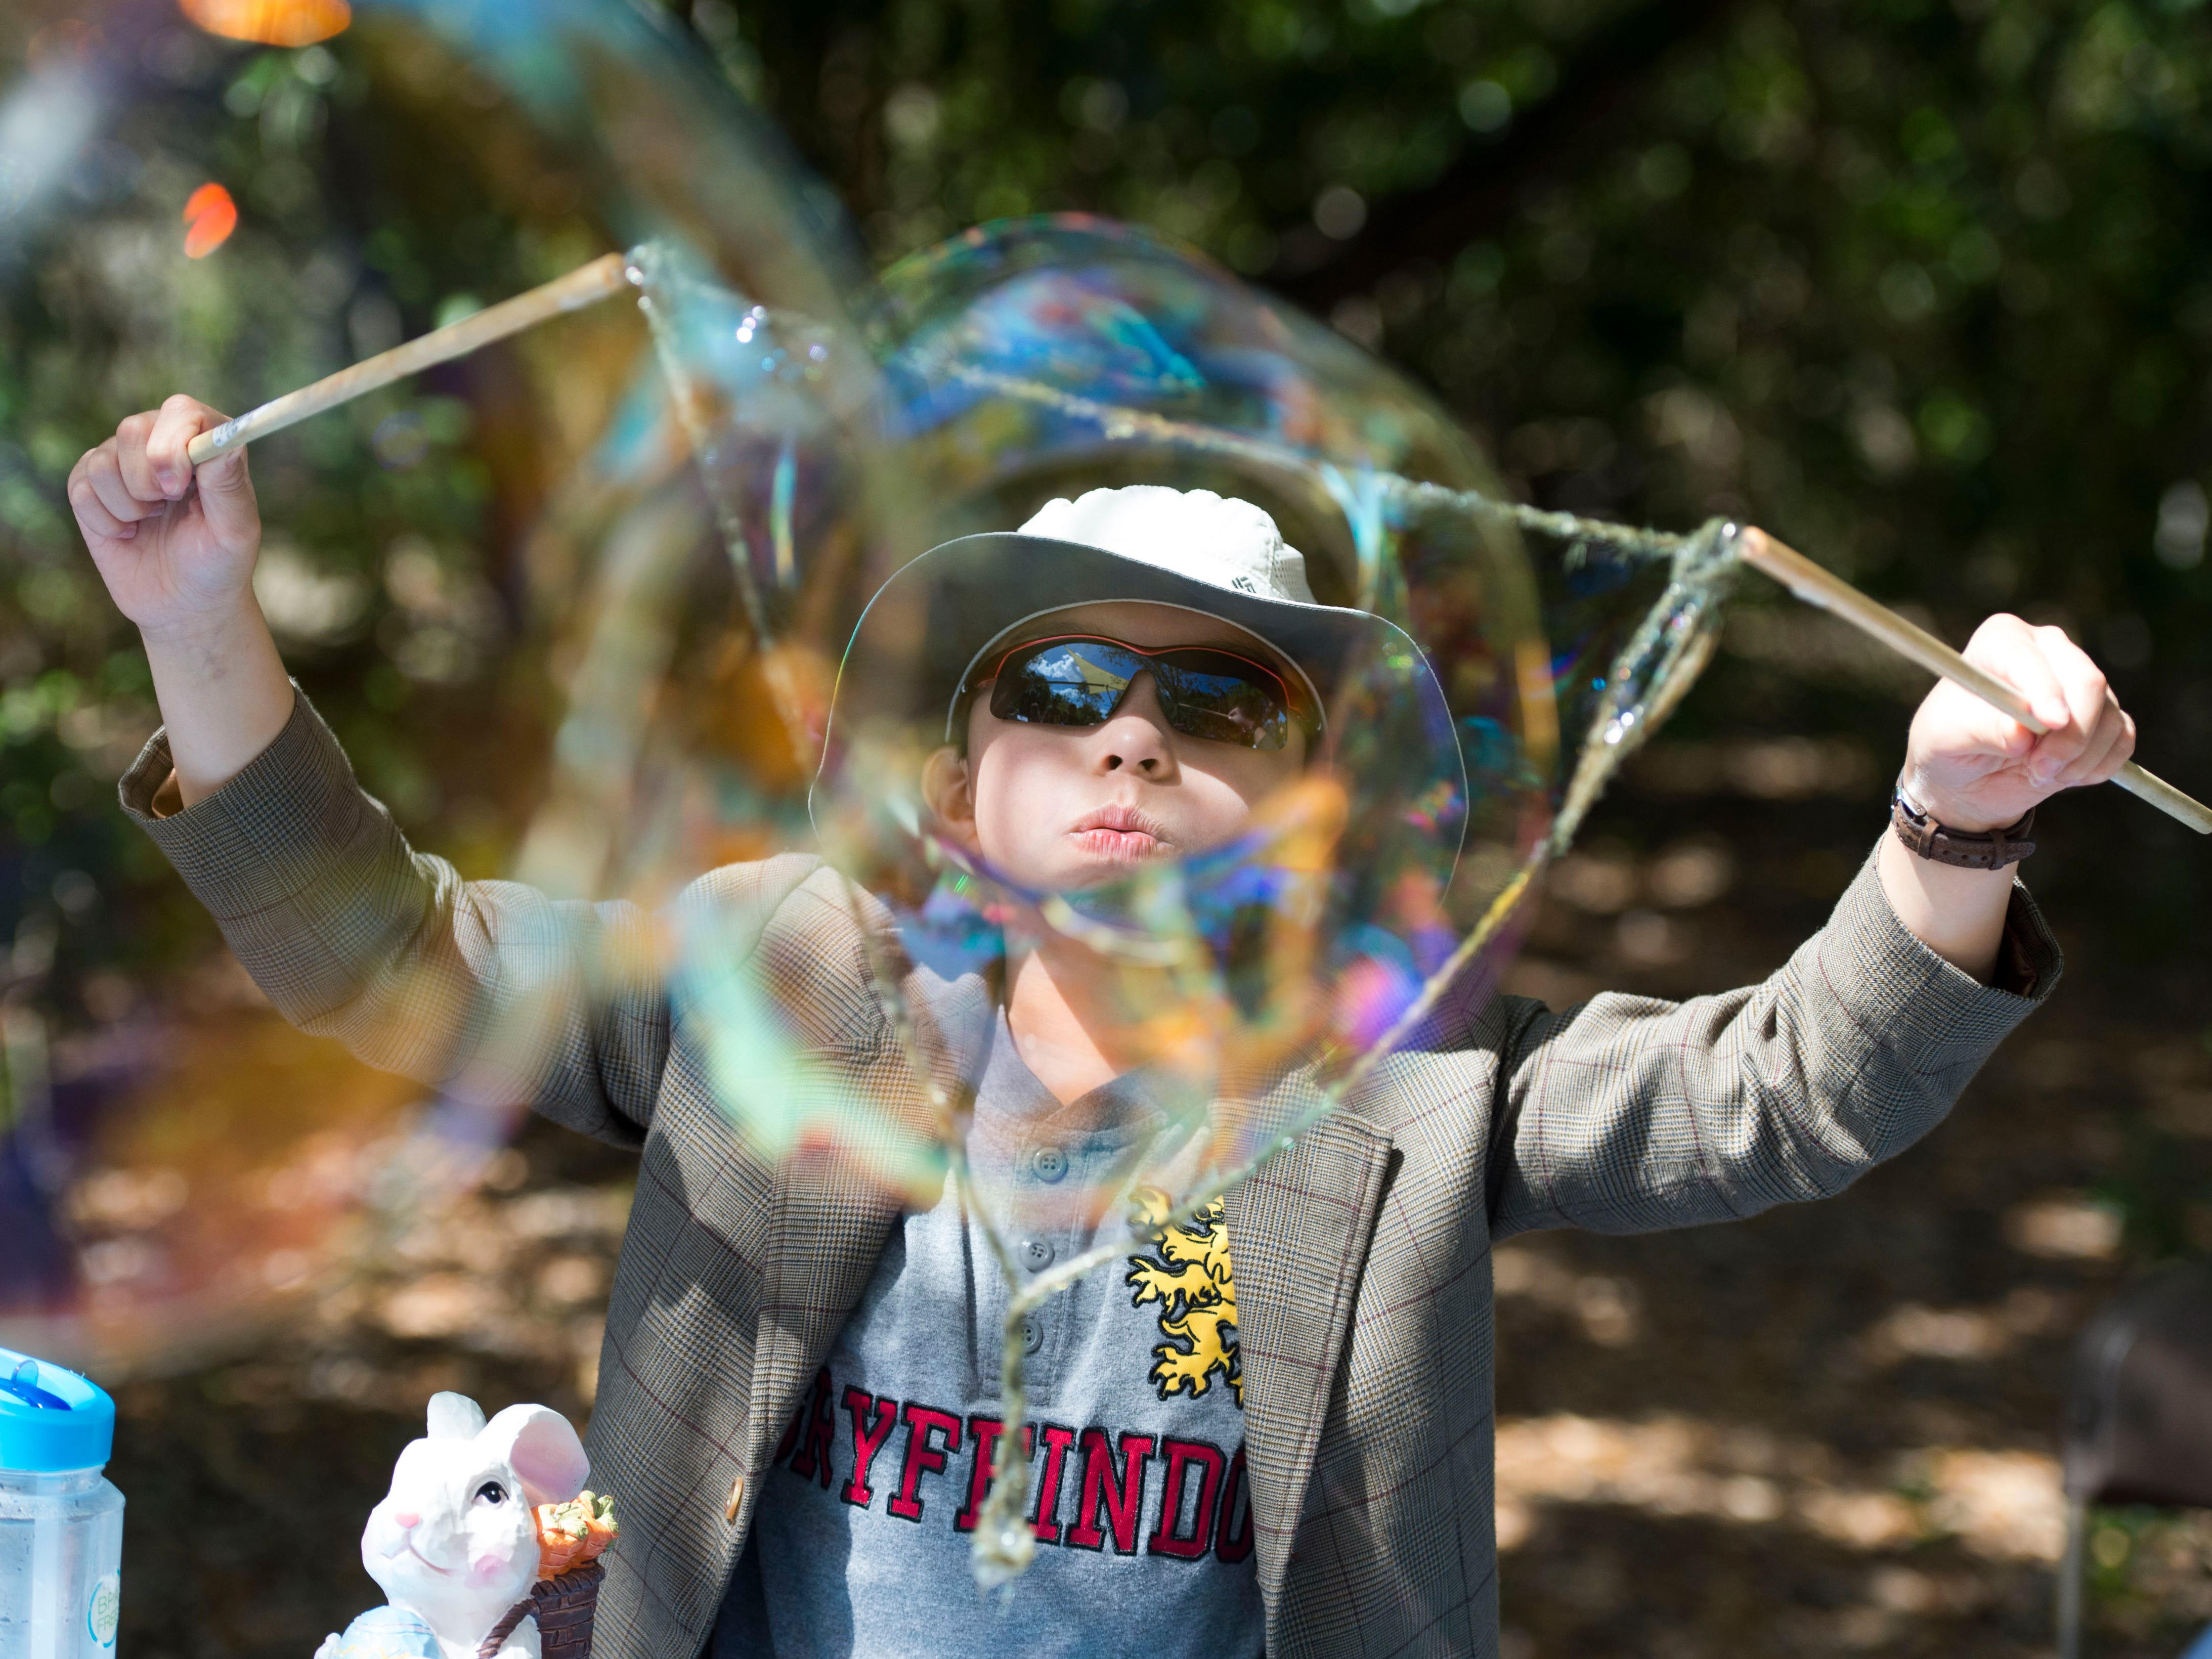 """Hunter Cook, 9, of Vero Beach, blows a homemade bubble March 4, 2018, during the 22nd annual EcoFest at the Environmental Learning Center in Vero Beach. """"I can just hold it up and watch the bubbles be formed,"""" Cook said. The event offered nature education booths, touch tank encounters, live music, crafts, adult workshops and more."""